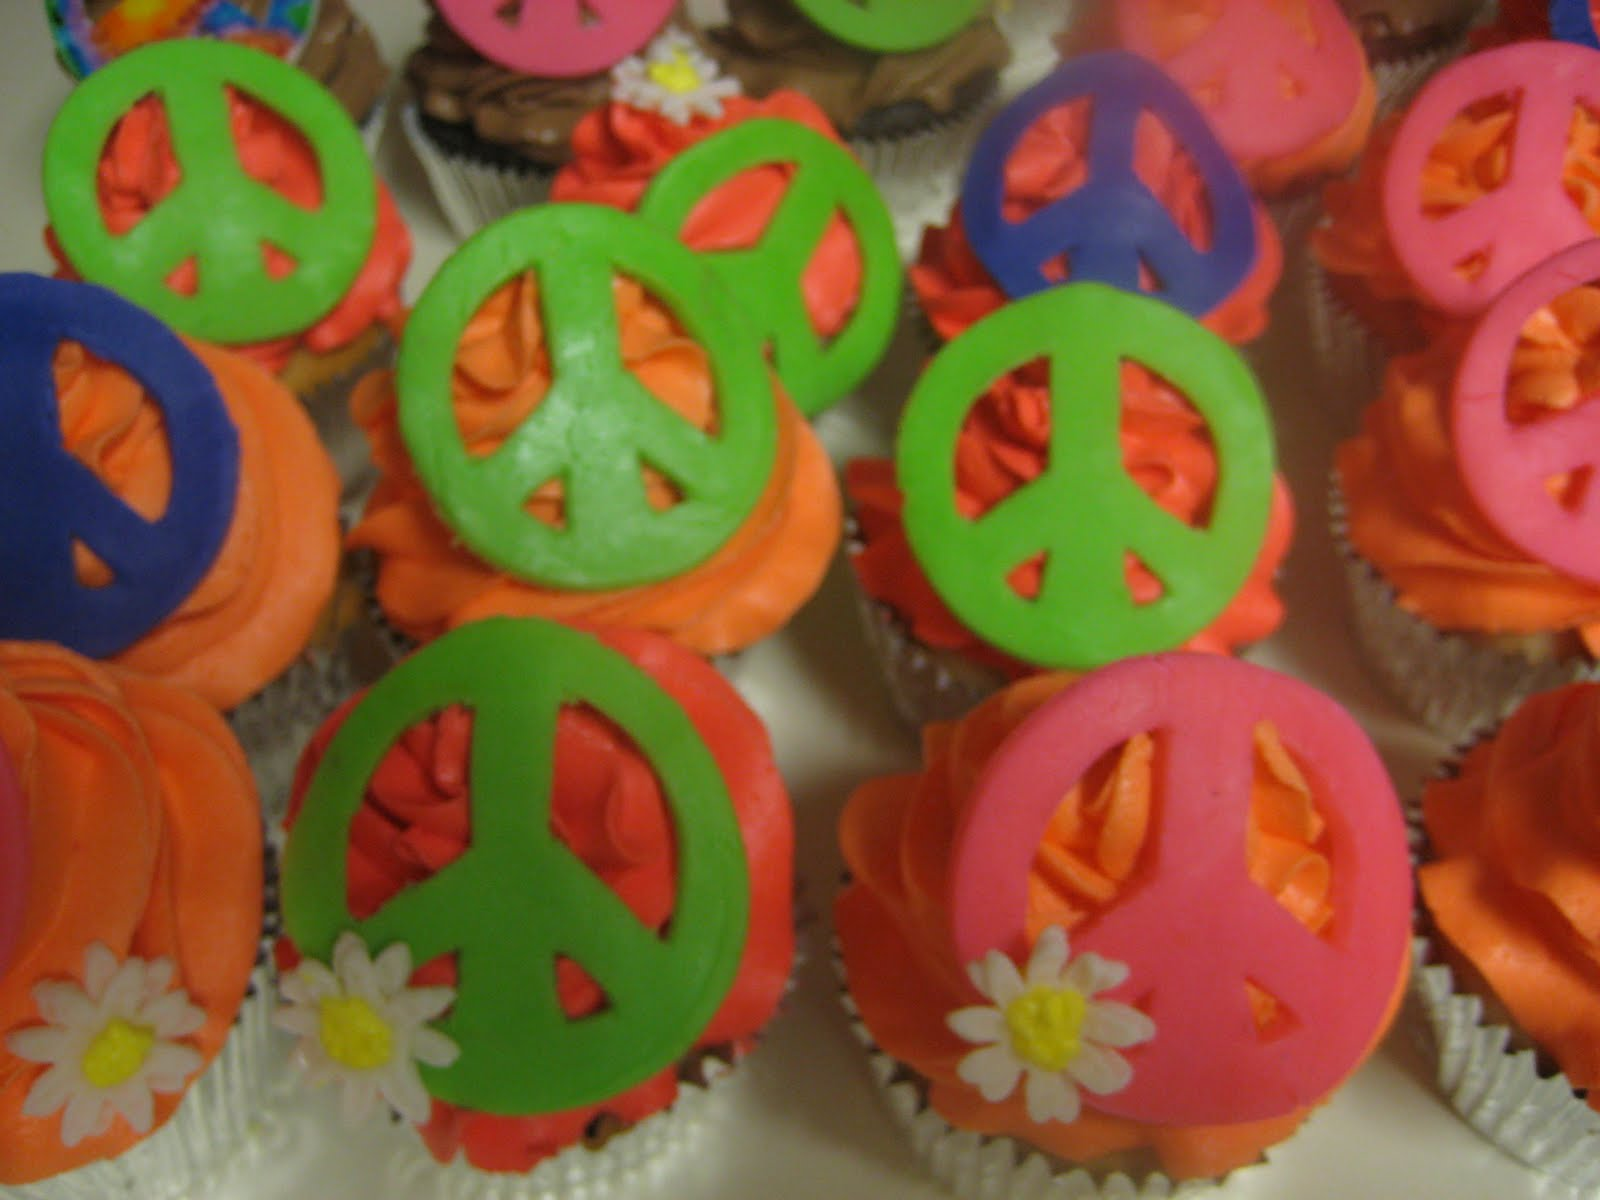 Download image Peace Sign Cupcakes PC, Android, iPhone and iPad ...